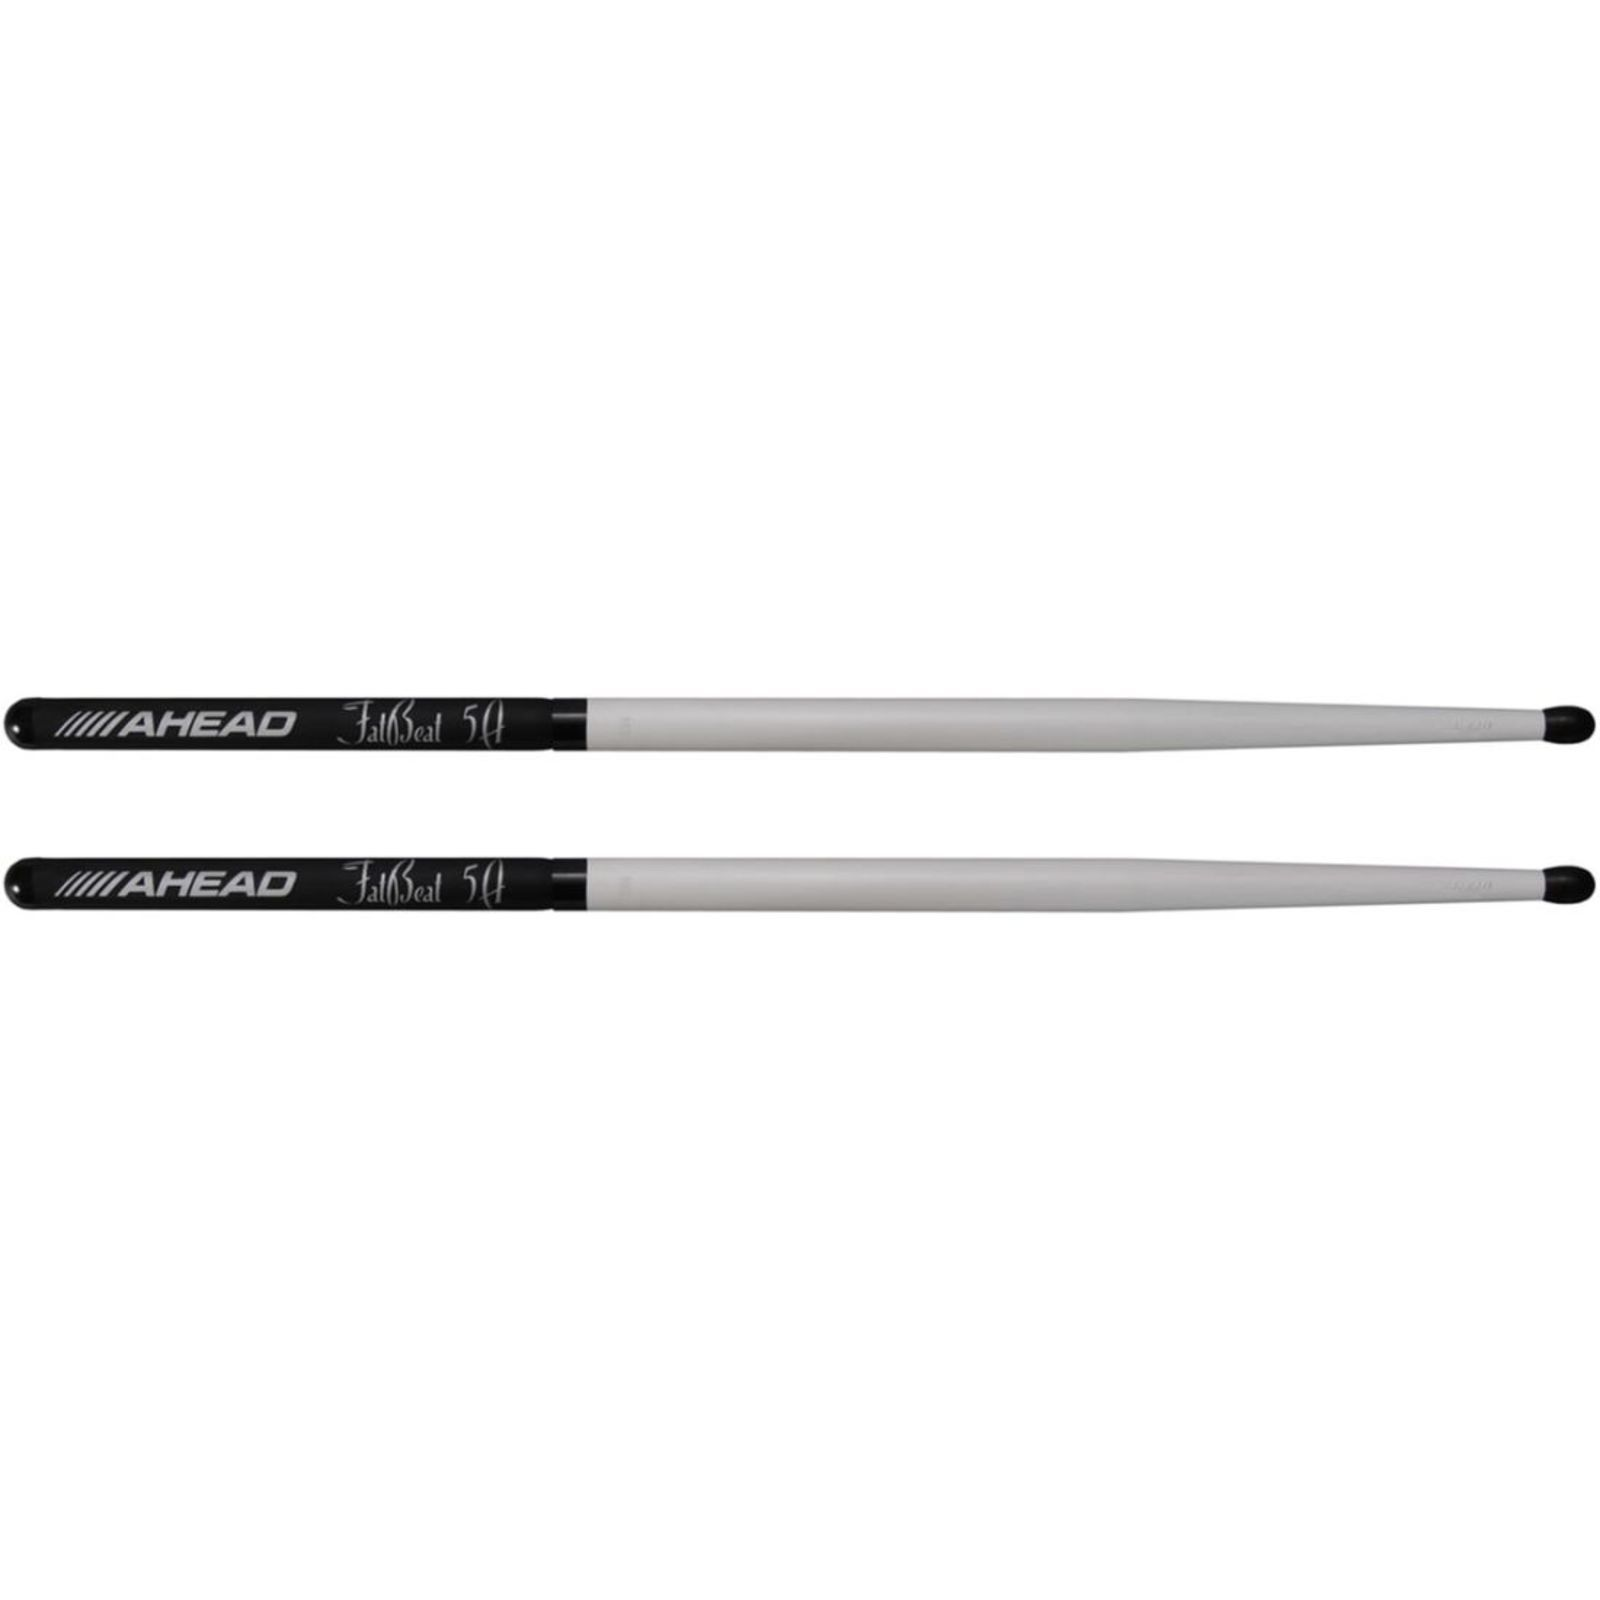 Ahead Sticks 5A Fat Beat Aluminium Sticks Produktbillede